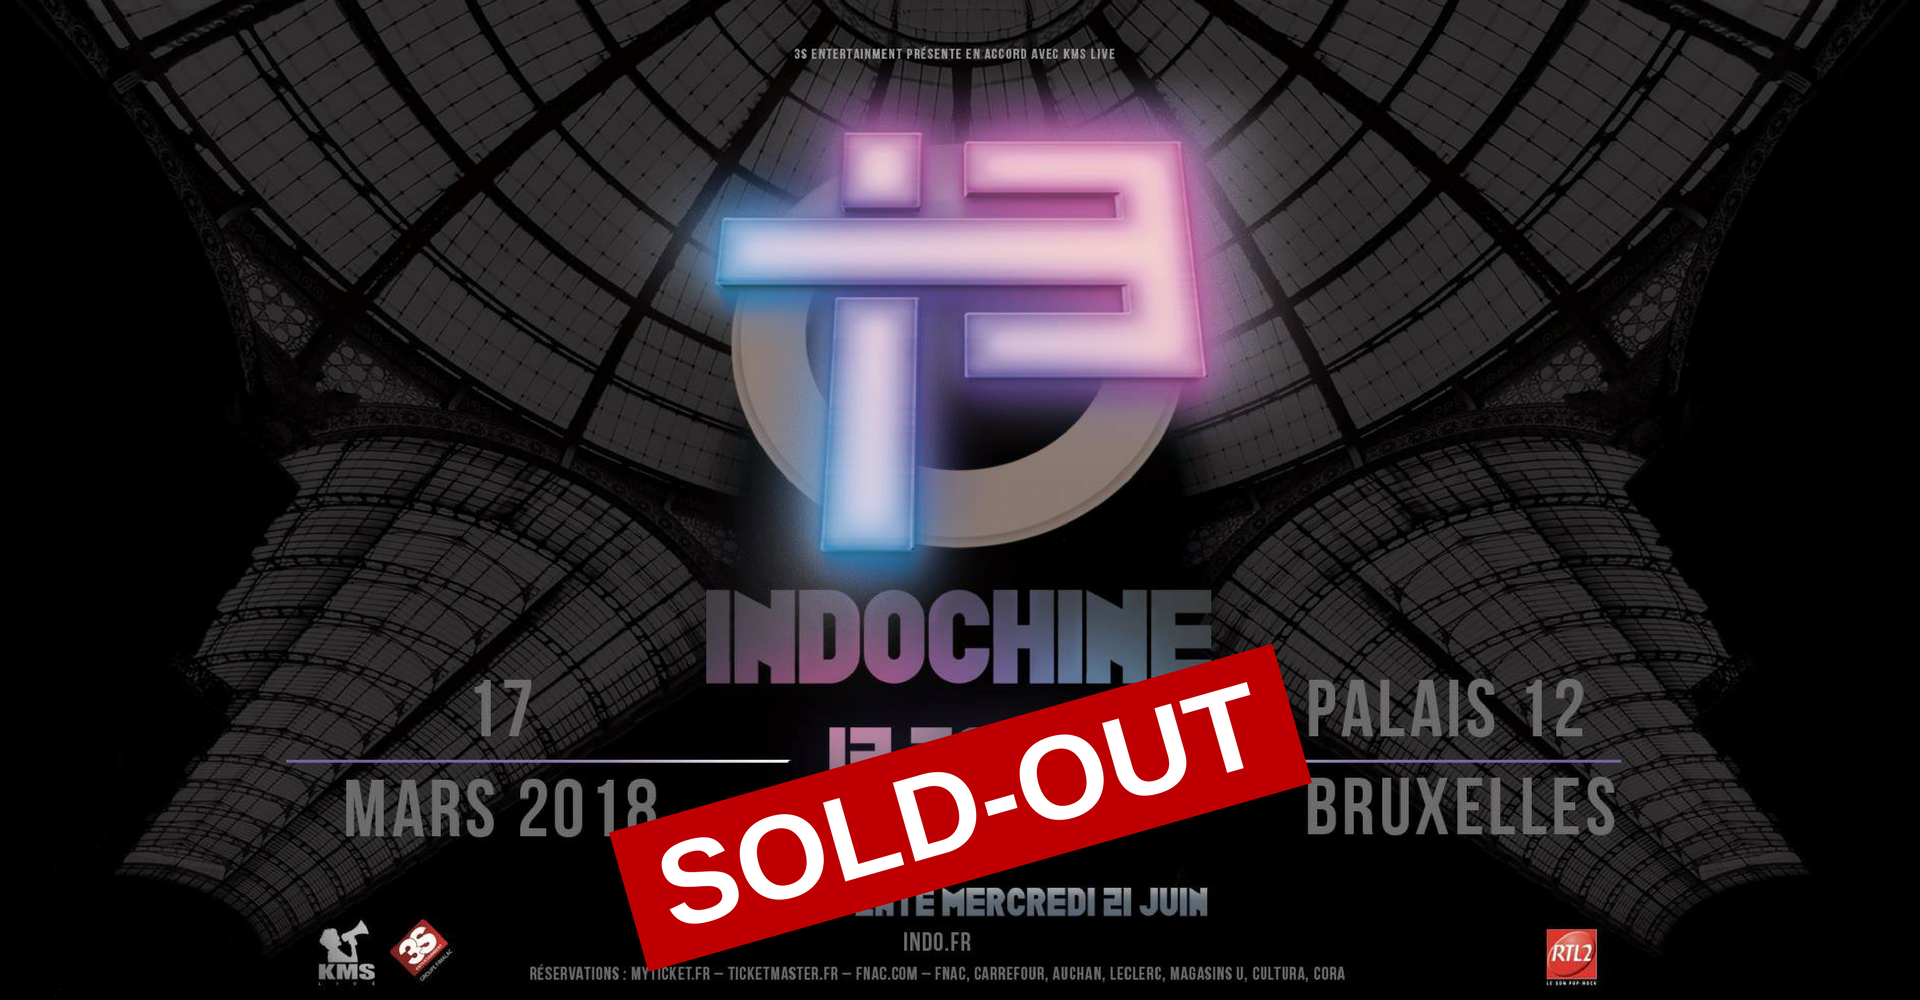 INDOCHINE - 13 TOUR (Complet)